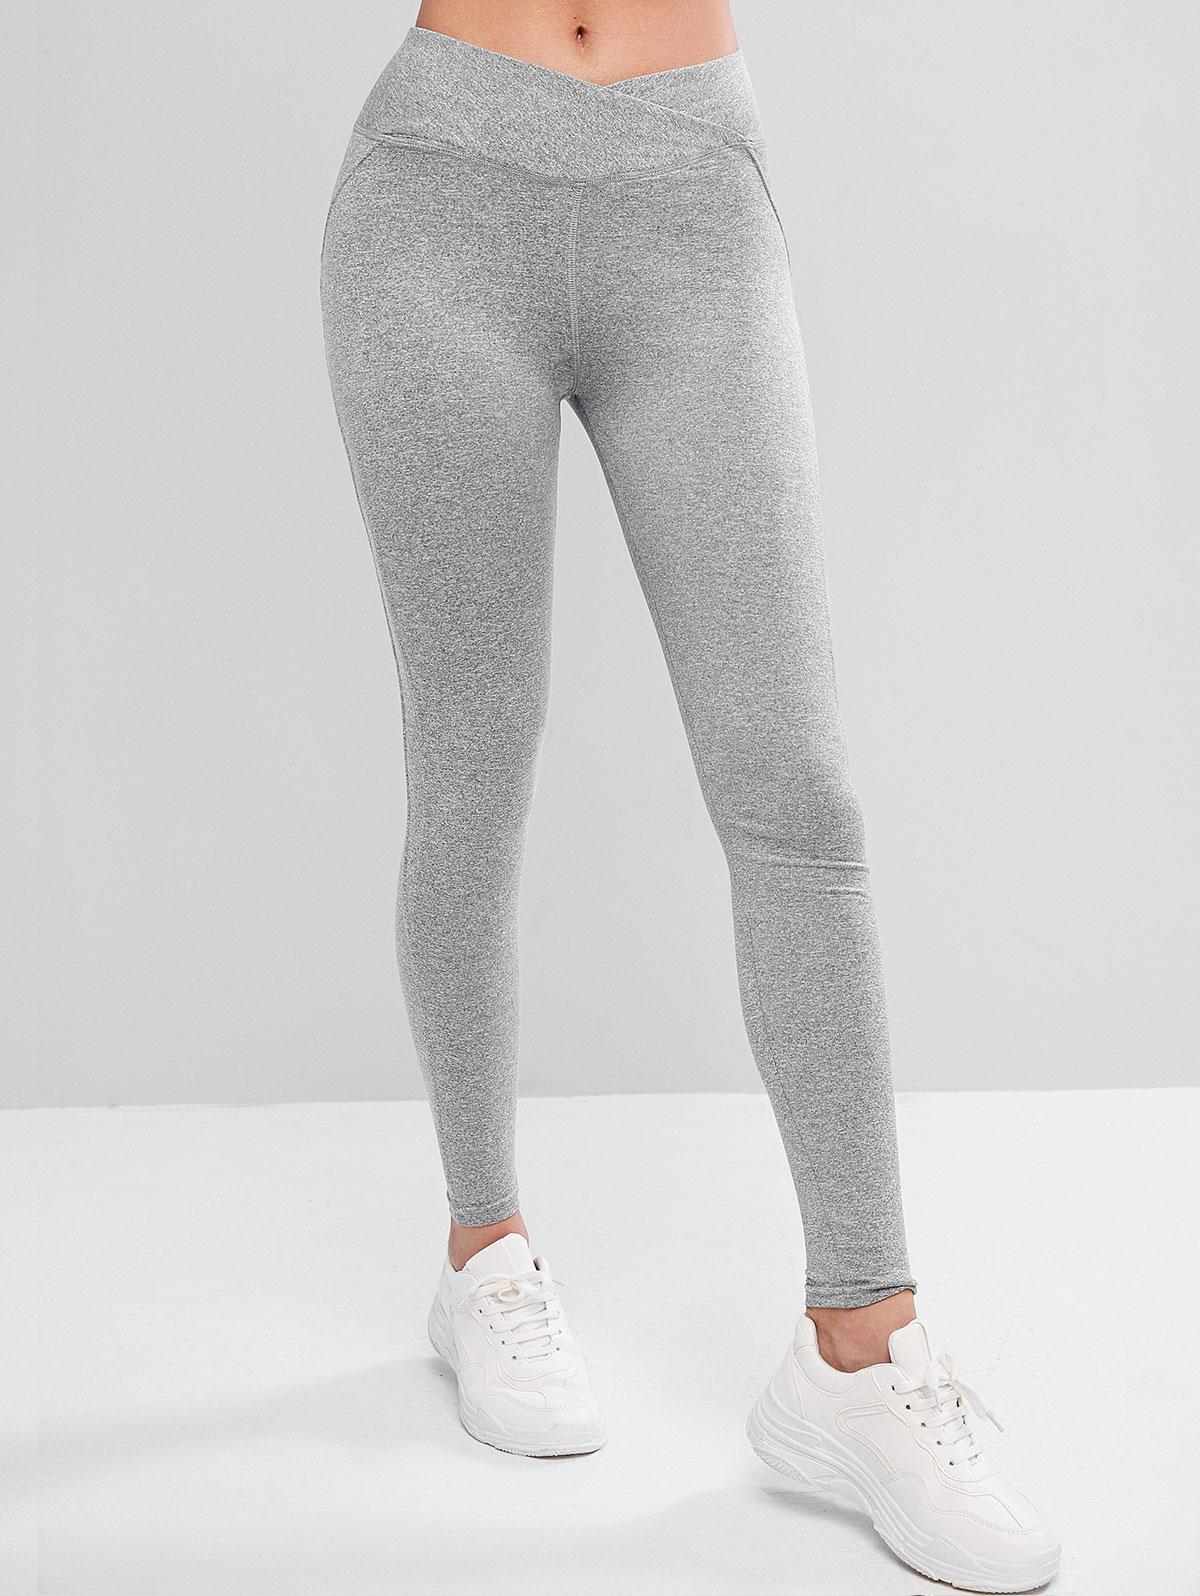 Overlap Waist Scrunch Butt Heathered Leggings